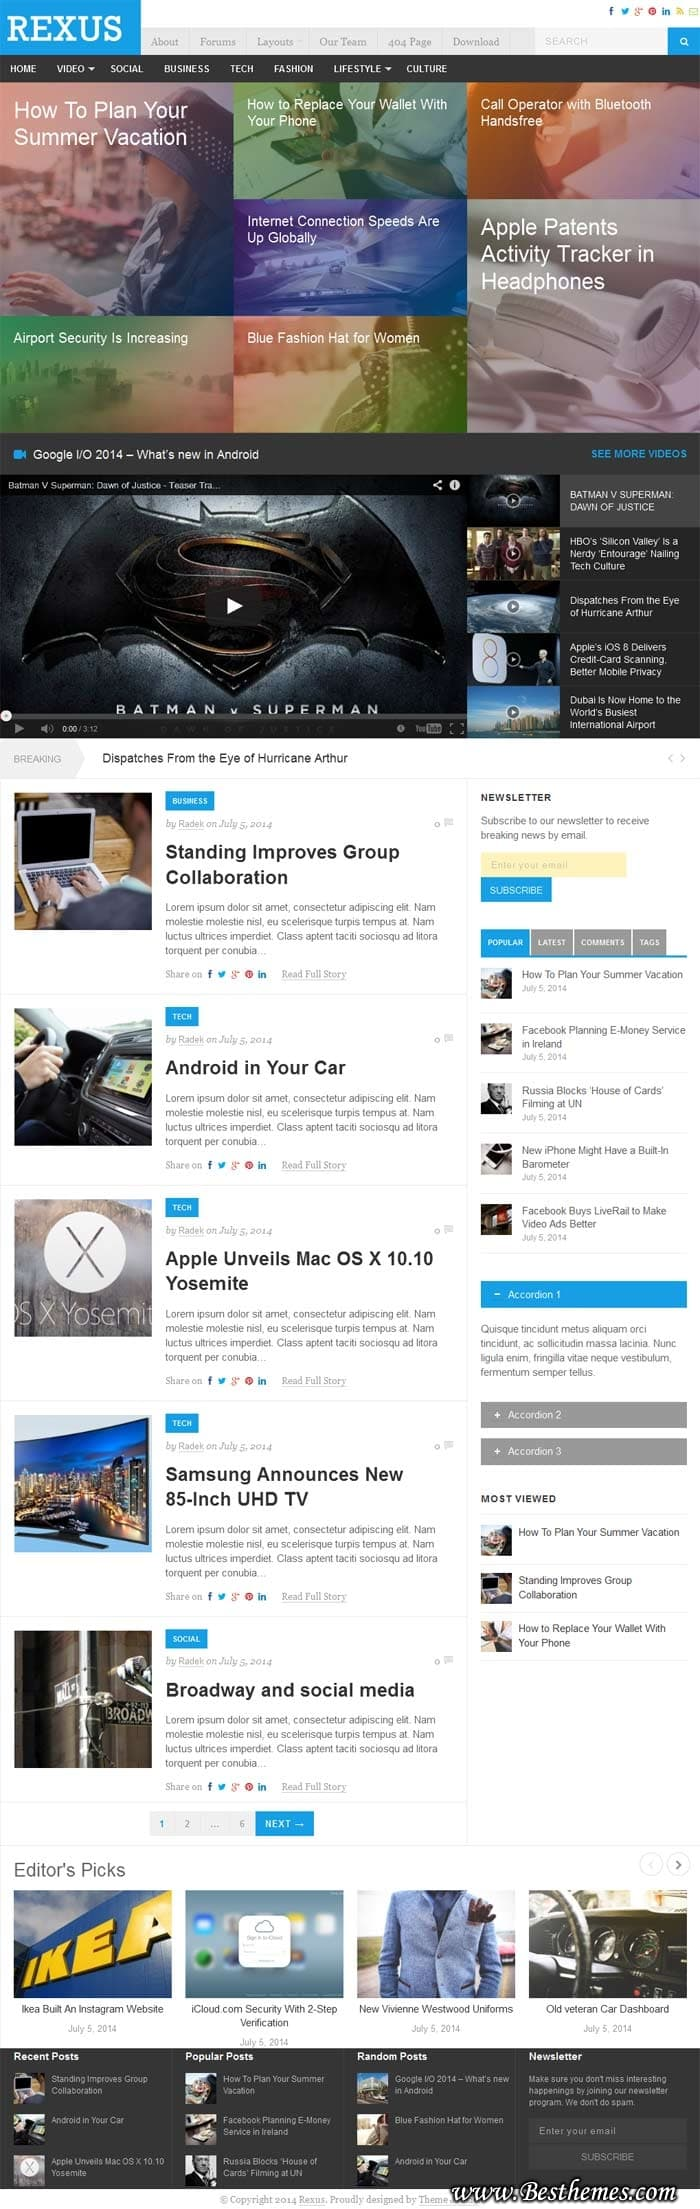 Rexus Theme For News and Magazine website